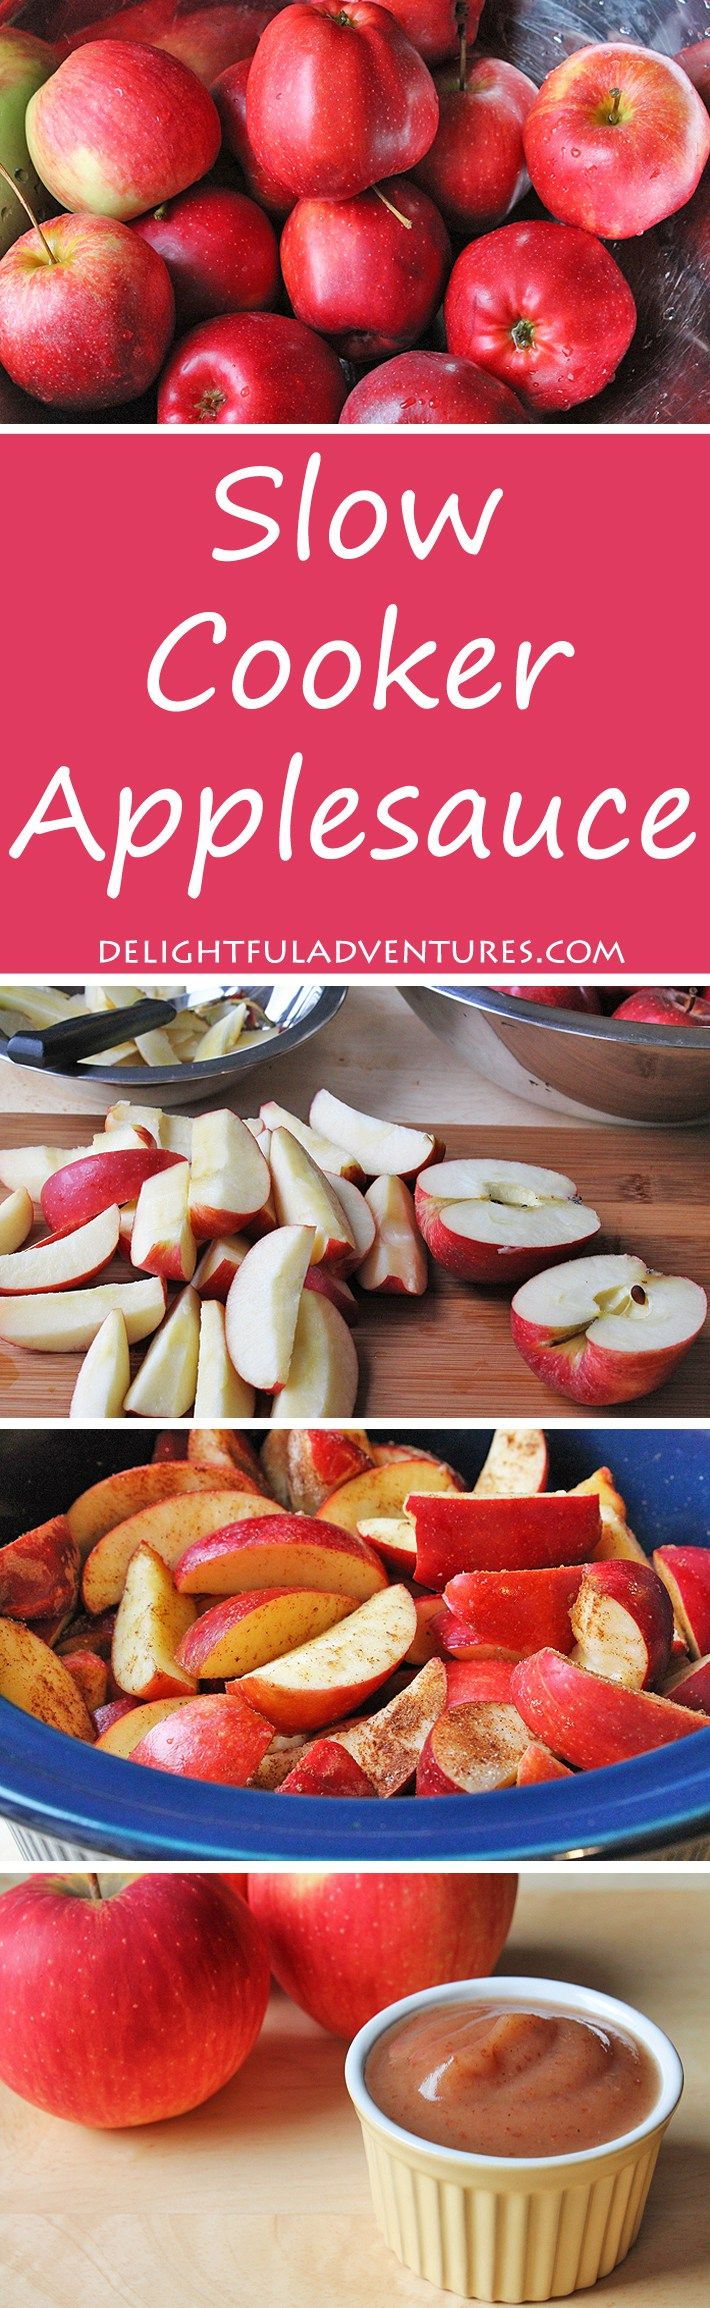 Do you  know how to make slow cooker applesauce? Once you see how easy and delicious it is, you won't want to buy store-bought applesauce again!